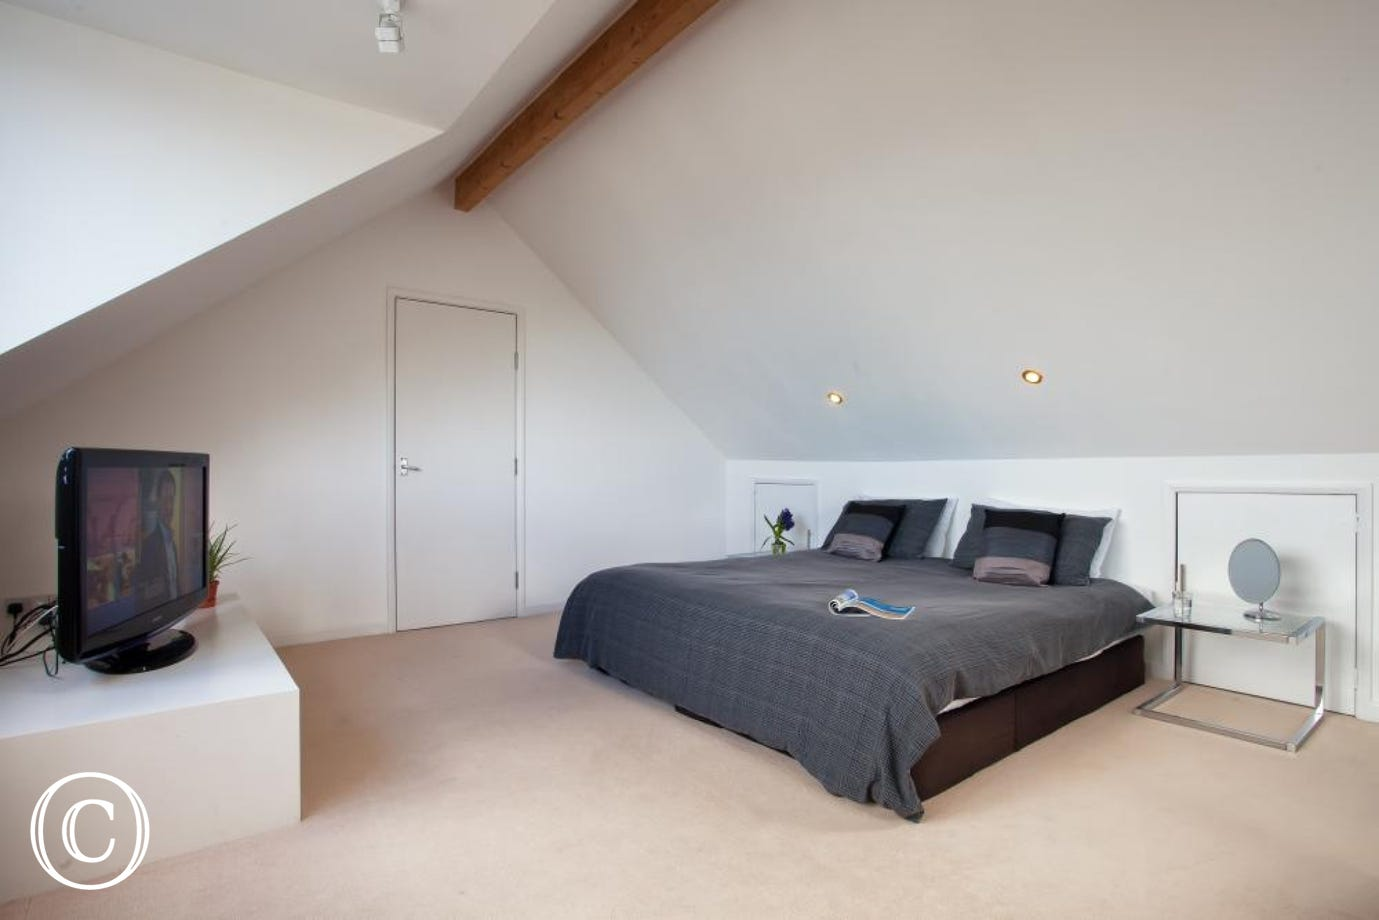 Spacious Master Bedroom at Ben's Place Self-catering Holiday Apartment in Livermead, Torquay